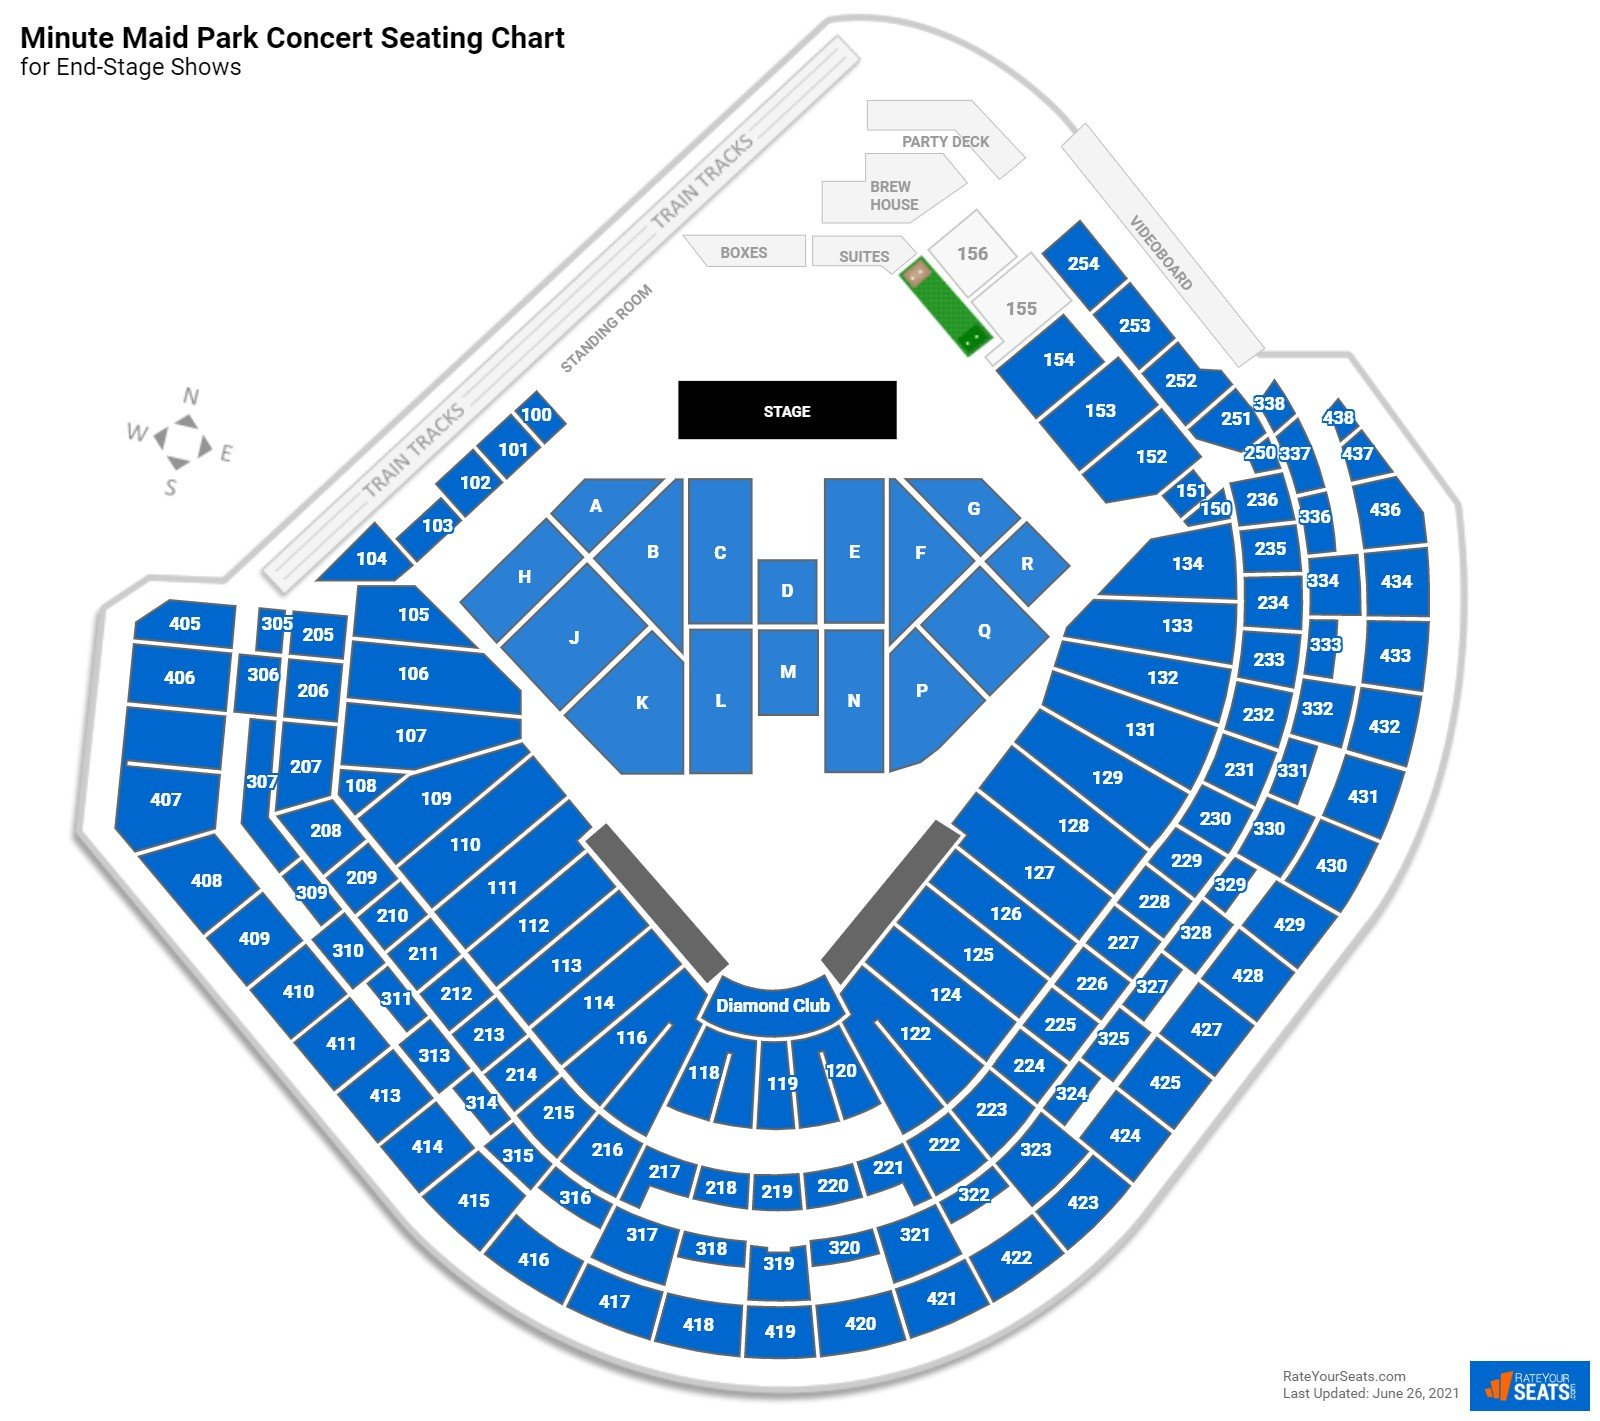 Minute Maid Park Seating Chart for Concerts